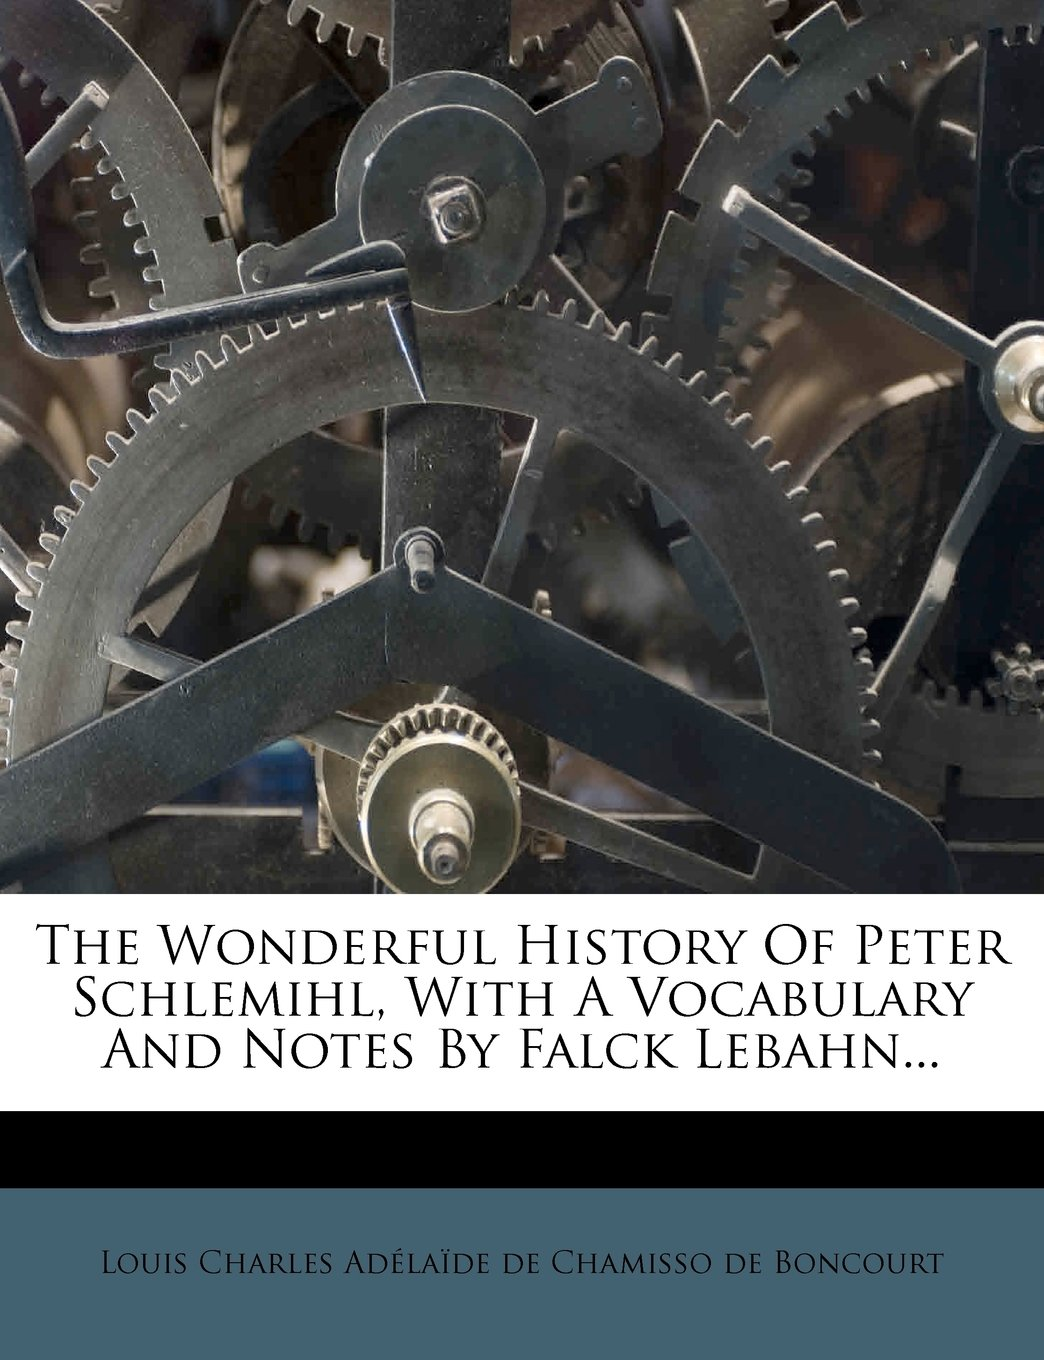 The Wonderful History of Peter Schlemihl, with a Vocabulary and Notes by Falck Lebahn... (German Edition) ebook